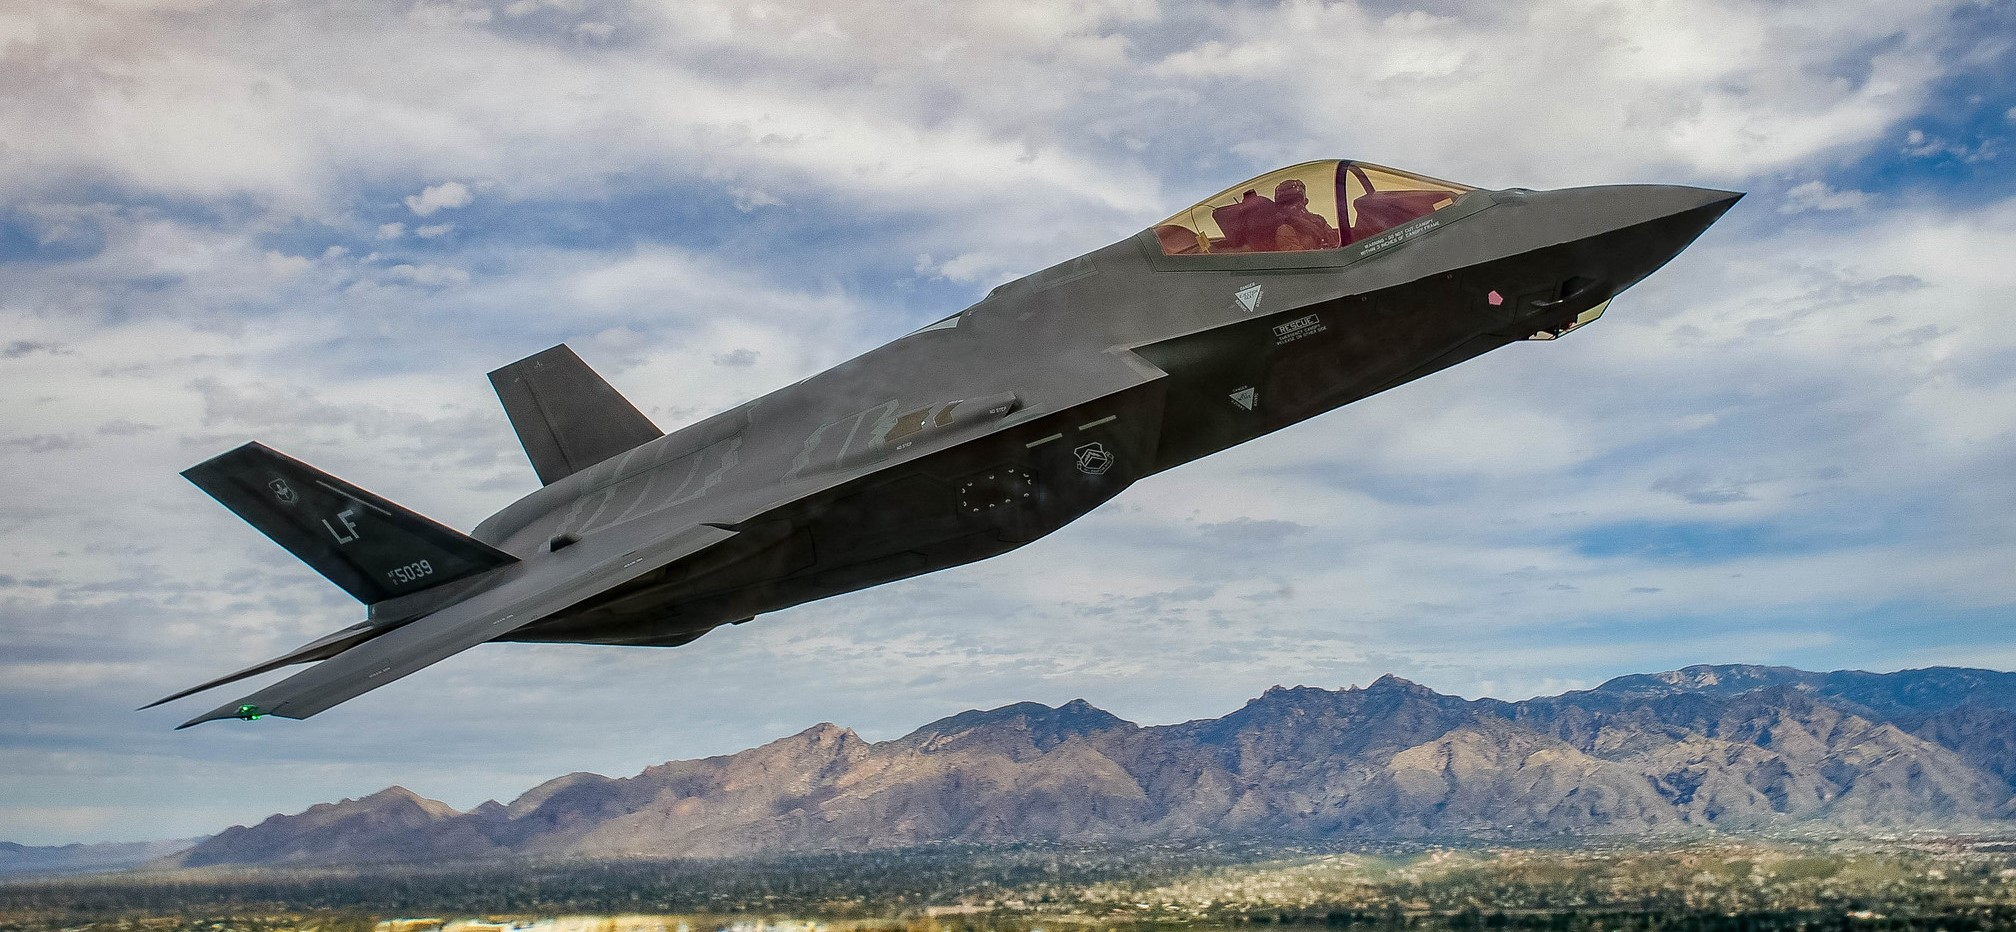 An F-35 Lightening II flies around the airspace of Davis-Monthan Air Force Base on March 5, 2016. The F-35 was participating in Air Combat CommandÕs Heritage Flight Training Course, a program that features modern fighter/attack aircraft flying alongside Word War II, Korean War, and Vietnam War-ear aircraft. (U.S. Air Force photo by Tech. Sgt. Brandon Shapiro)